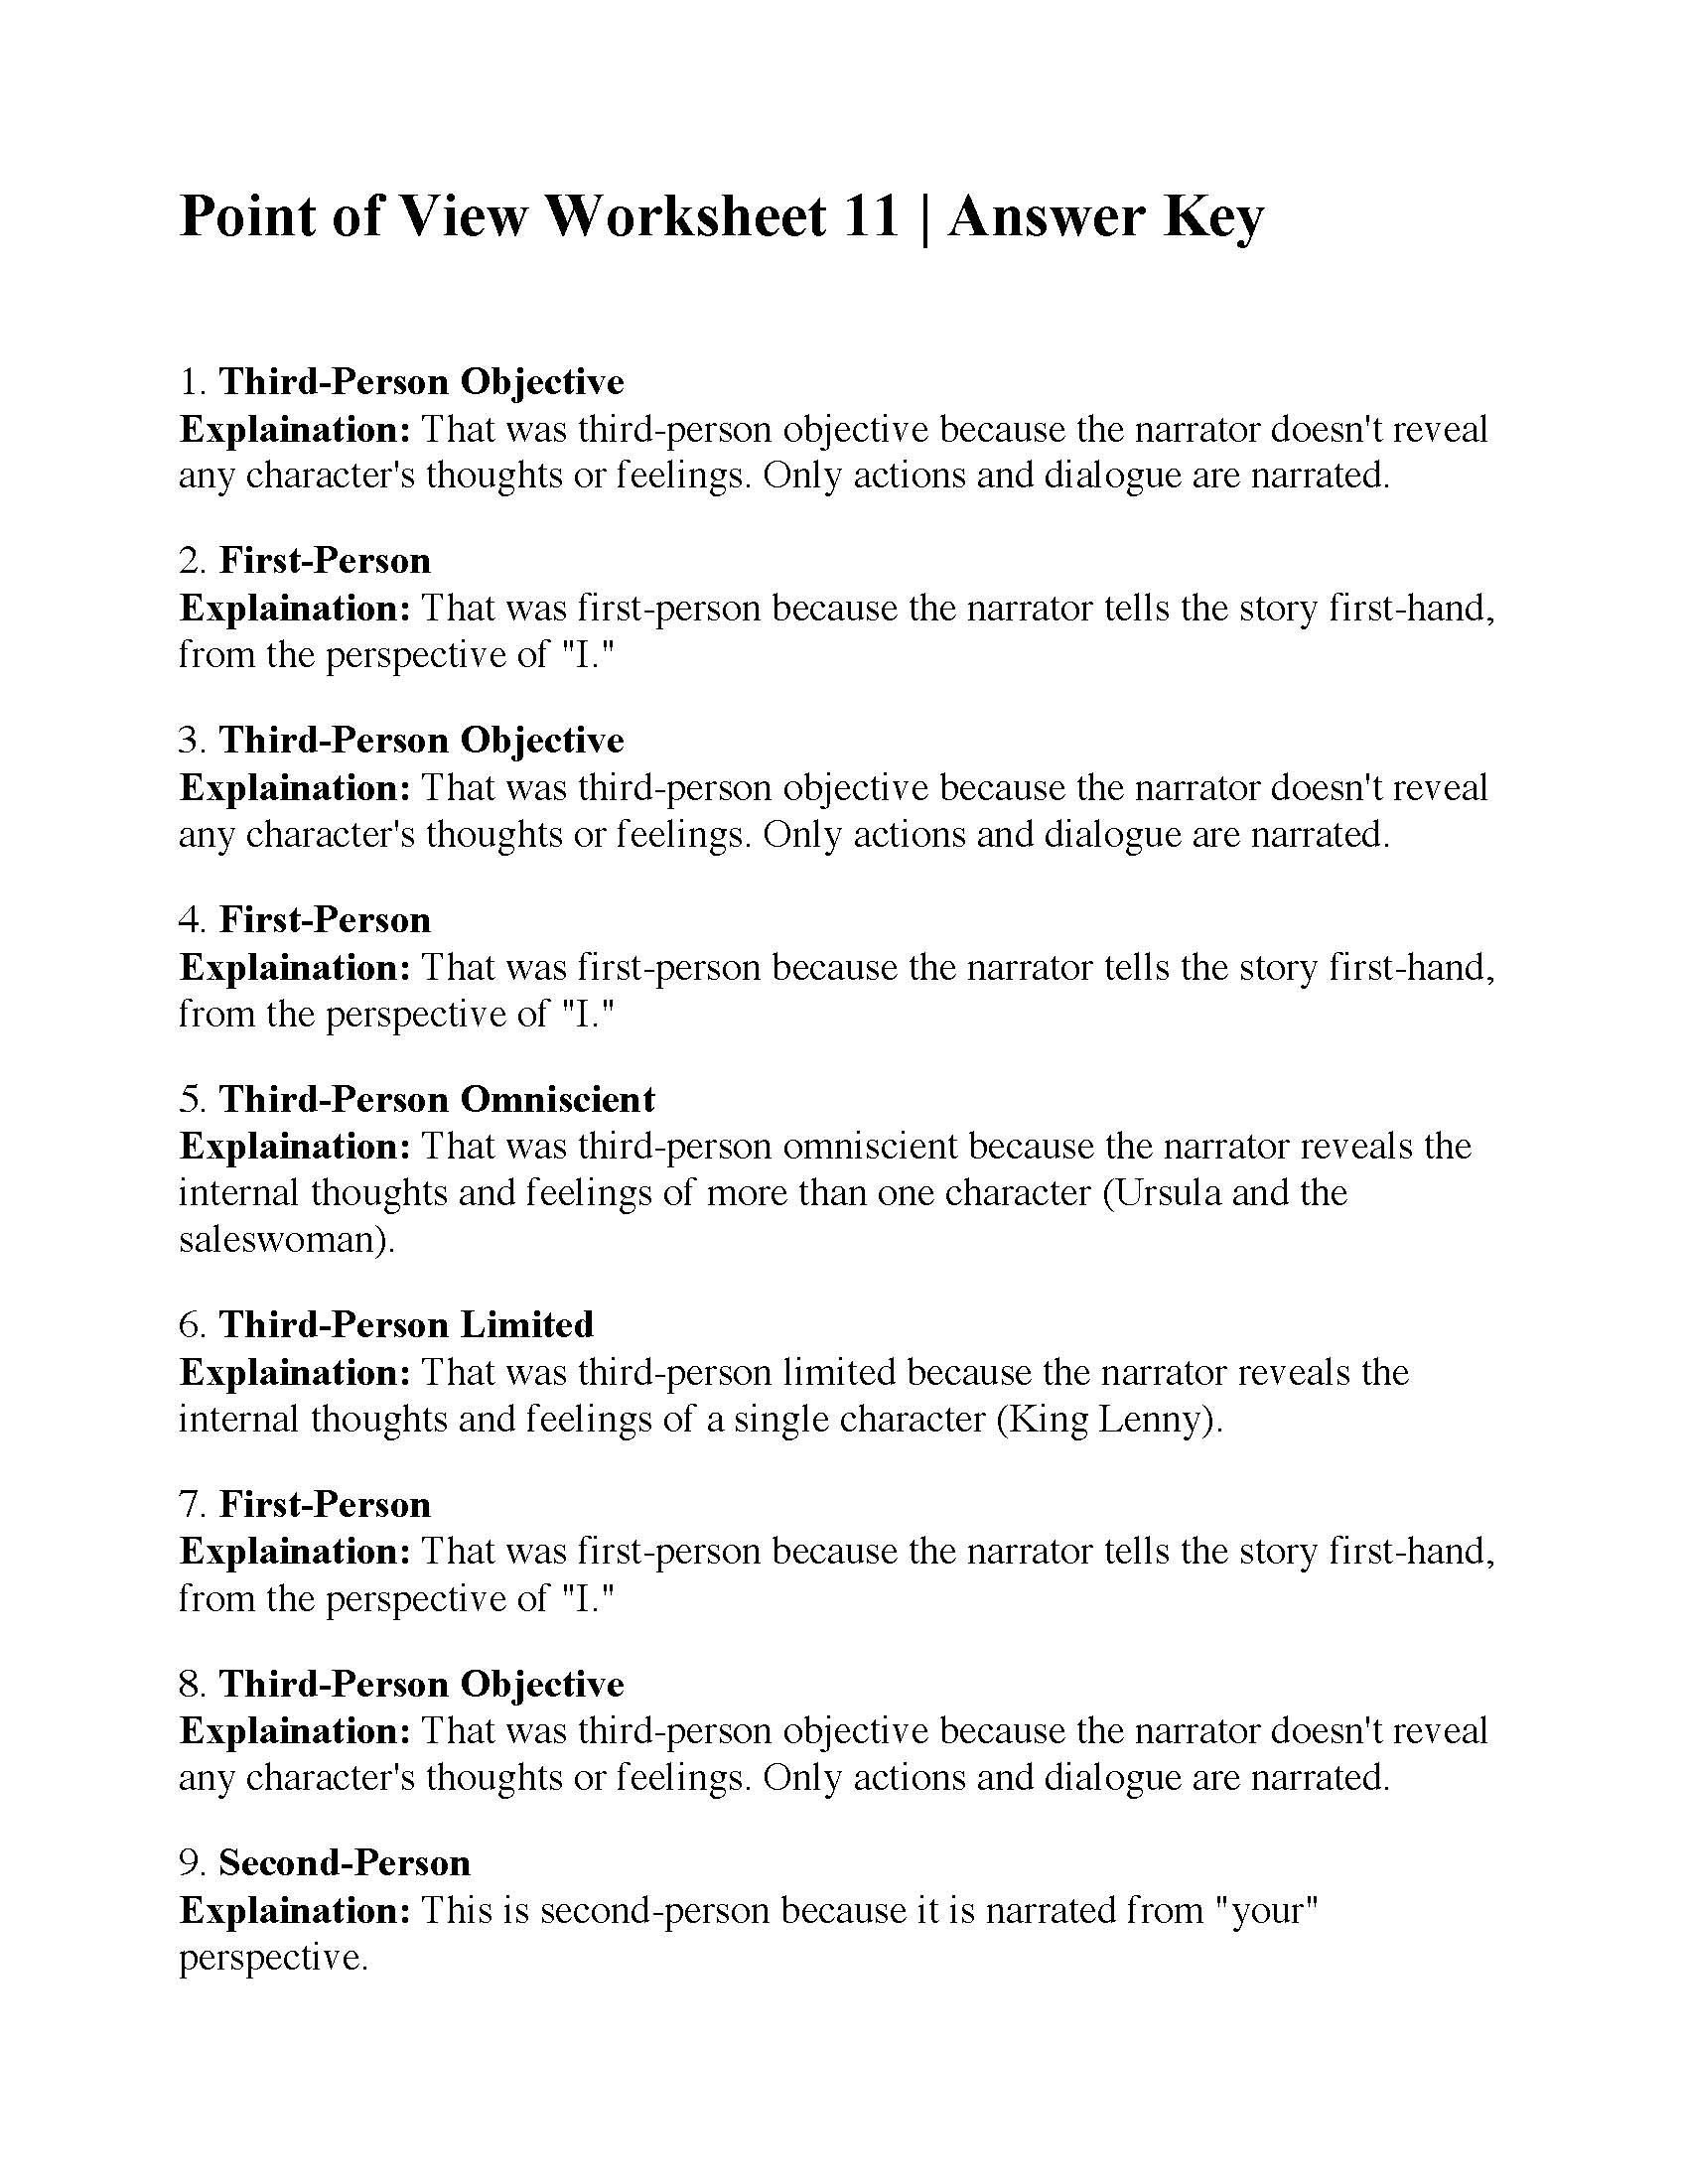 Point Of View Worksheet Answers